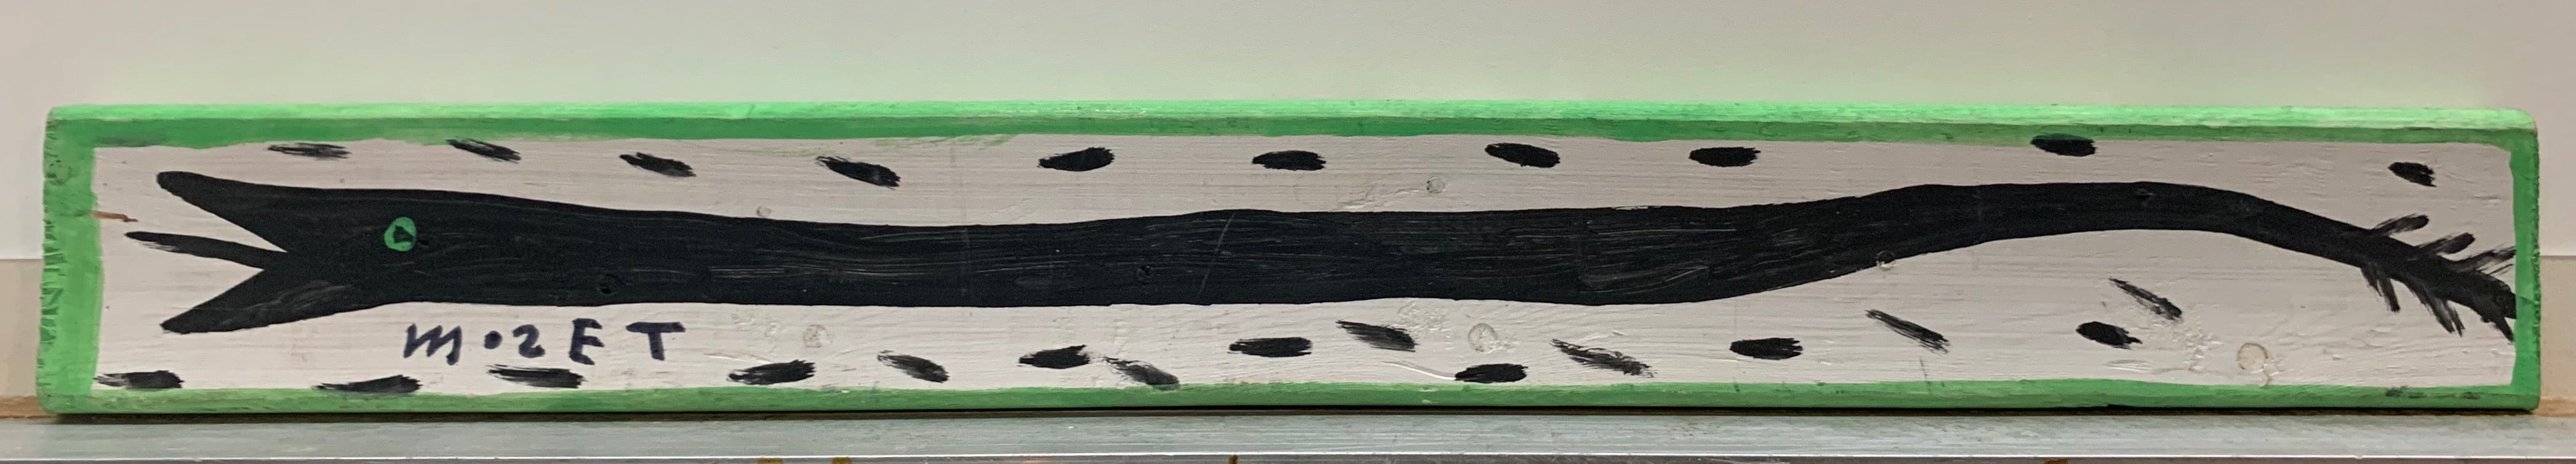 A Mose Tolliver painting of a black snake with a mint green eye.